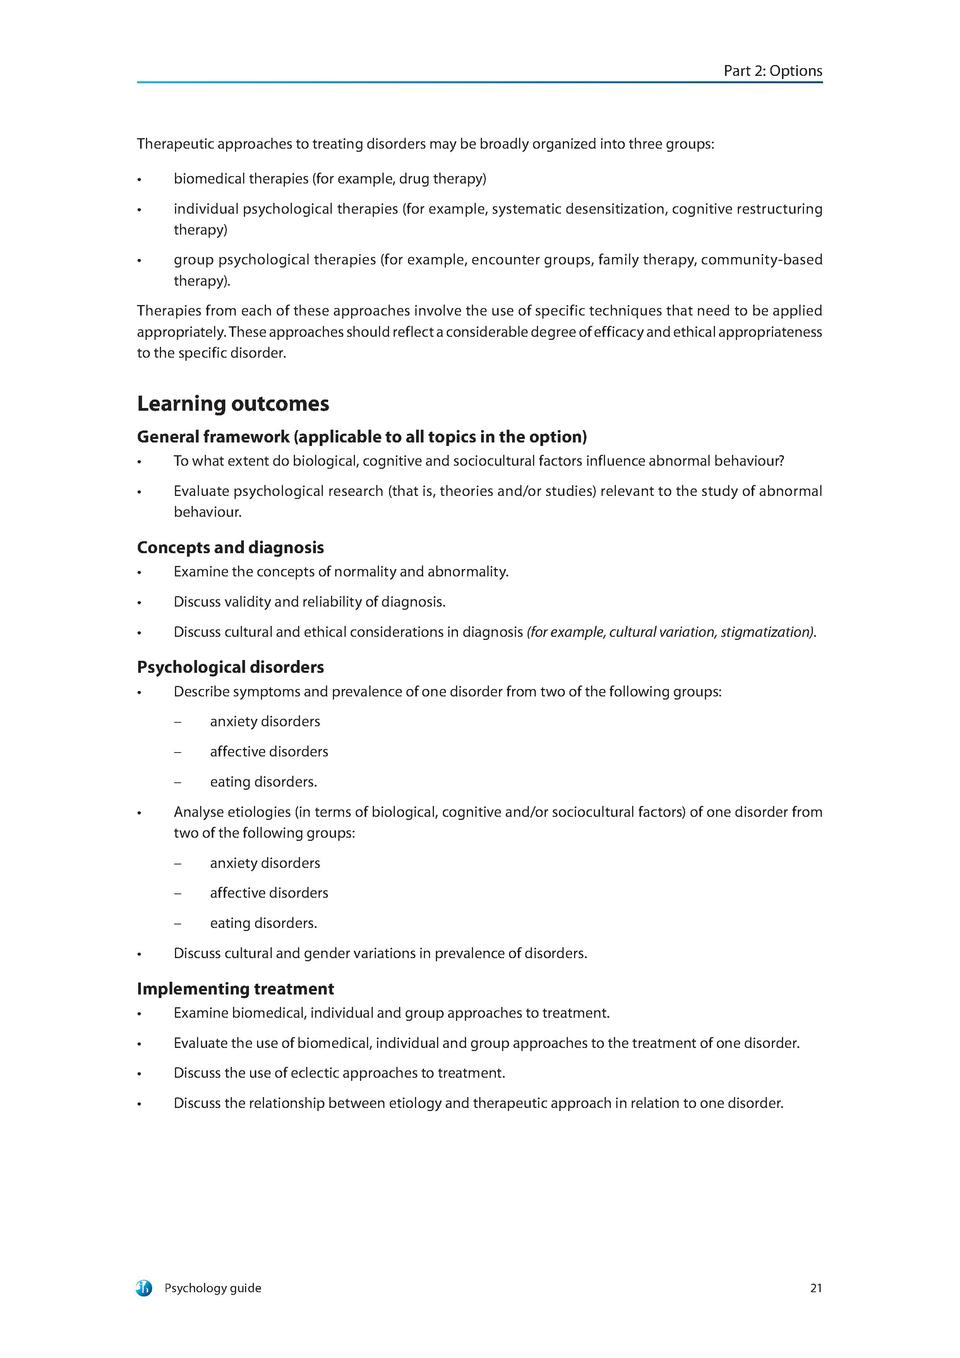 examination of clinical psychology 2 essay As a third-year applied psychology student at antioch new england graduate school in new hampshire, duff needed to pass a two-part exam consisting of an essay question and an oral presentation of a clinical case.